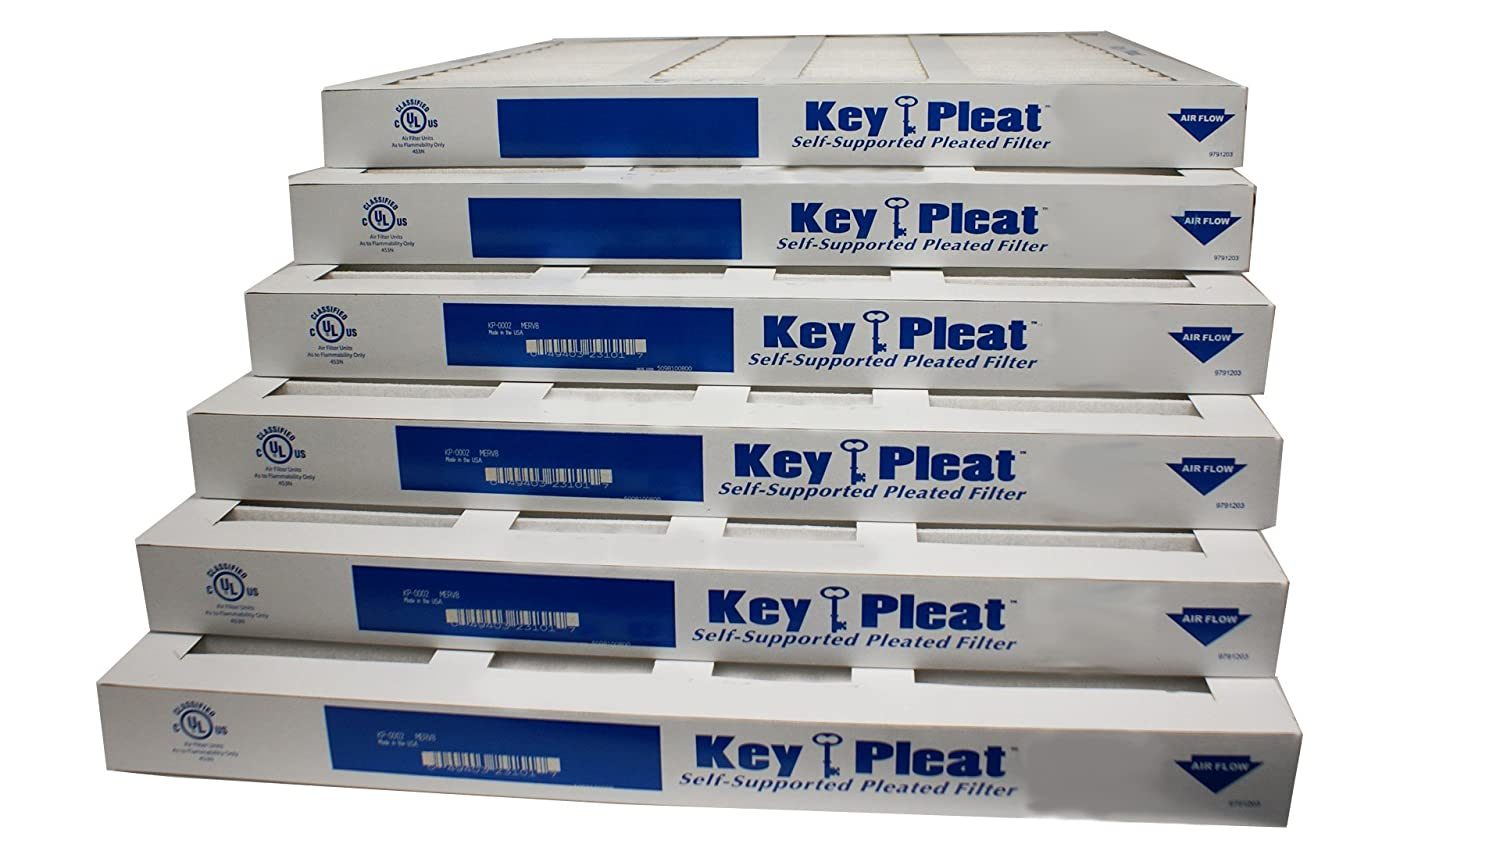 Sterling Seal KP-5251070884x2 Purolator Key Pleat Extended Surface Pleated Air Filter 14 W x 25 H x 1 D Mechanical MERV 8 Pack of 2